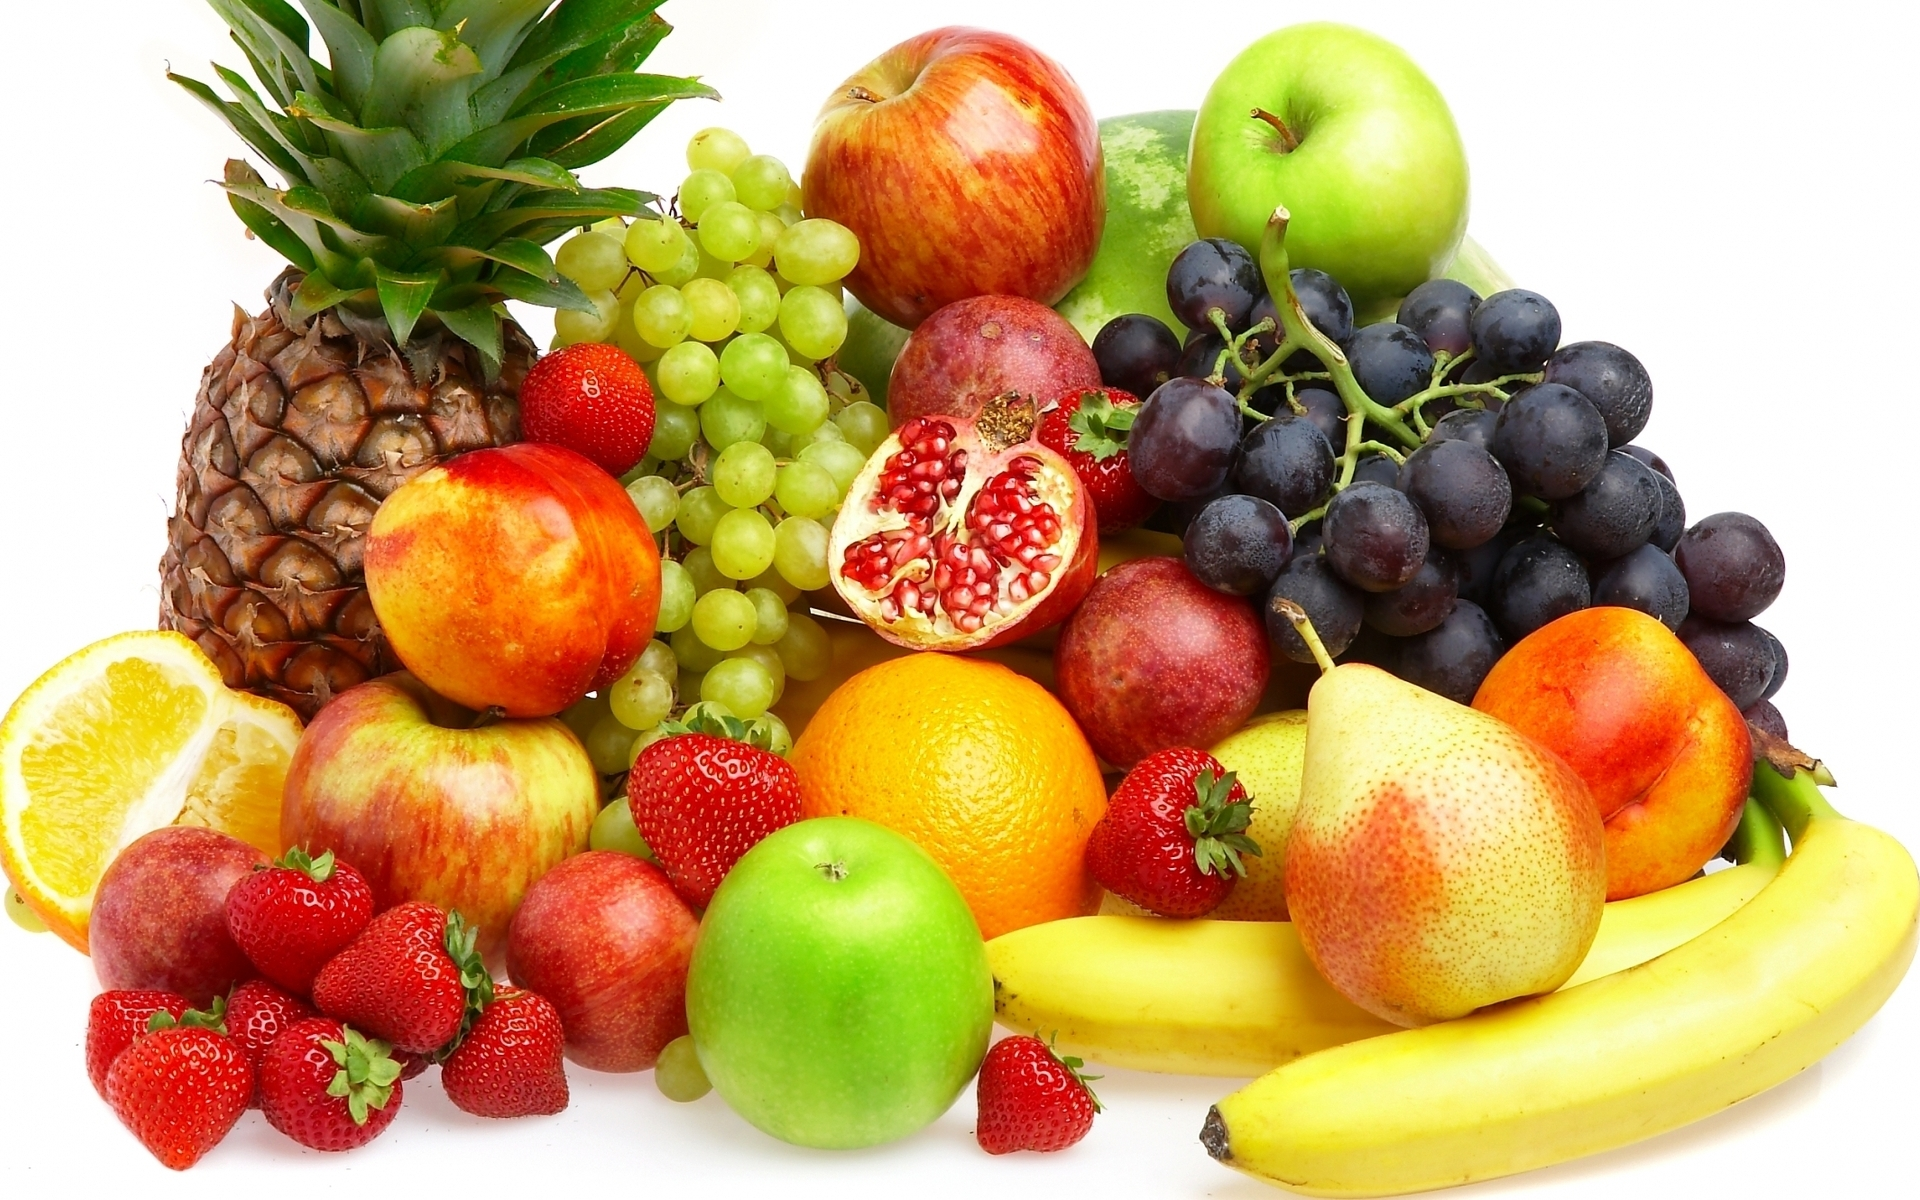 Fruits 3d wallpapers - All Fruits Hd Wallpaper